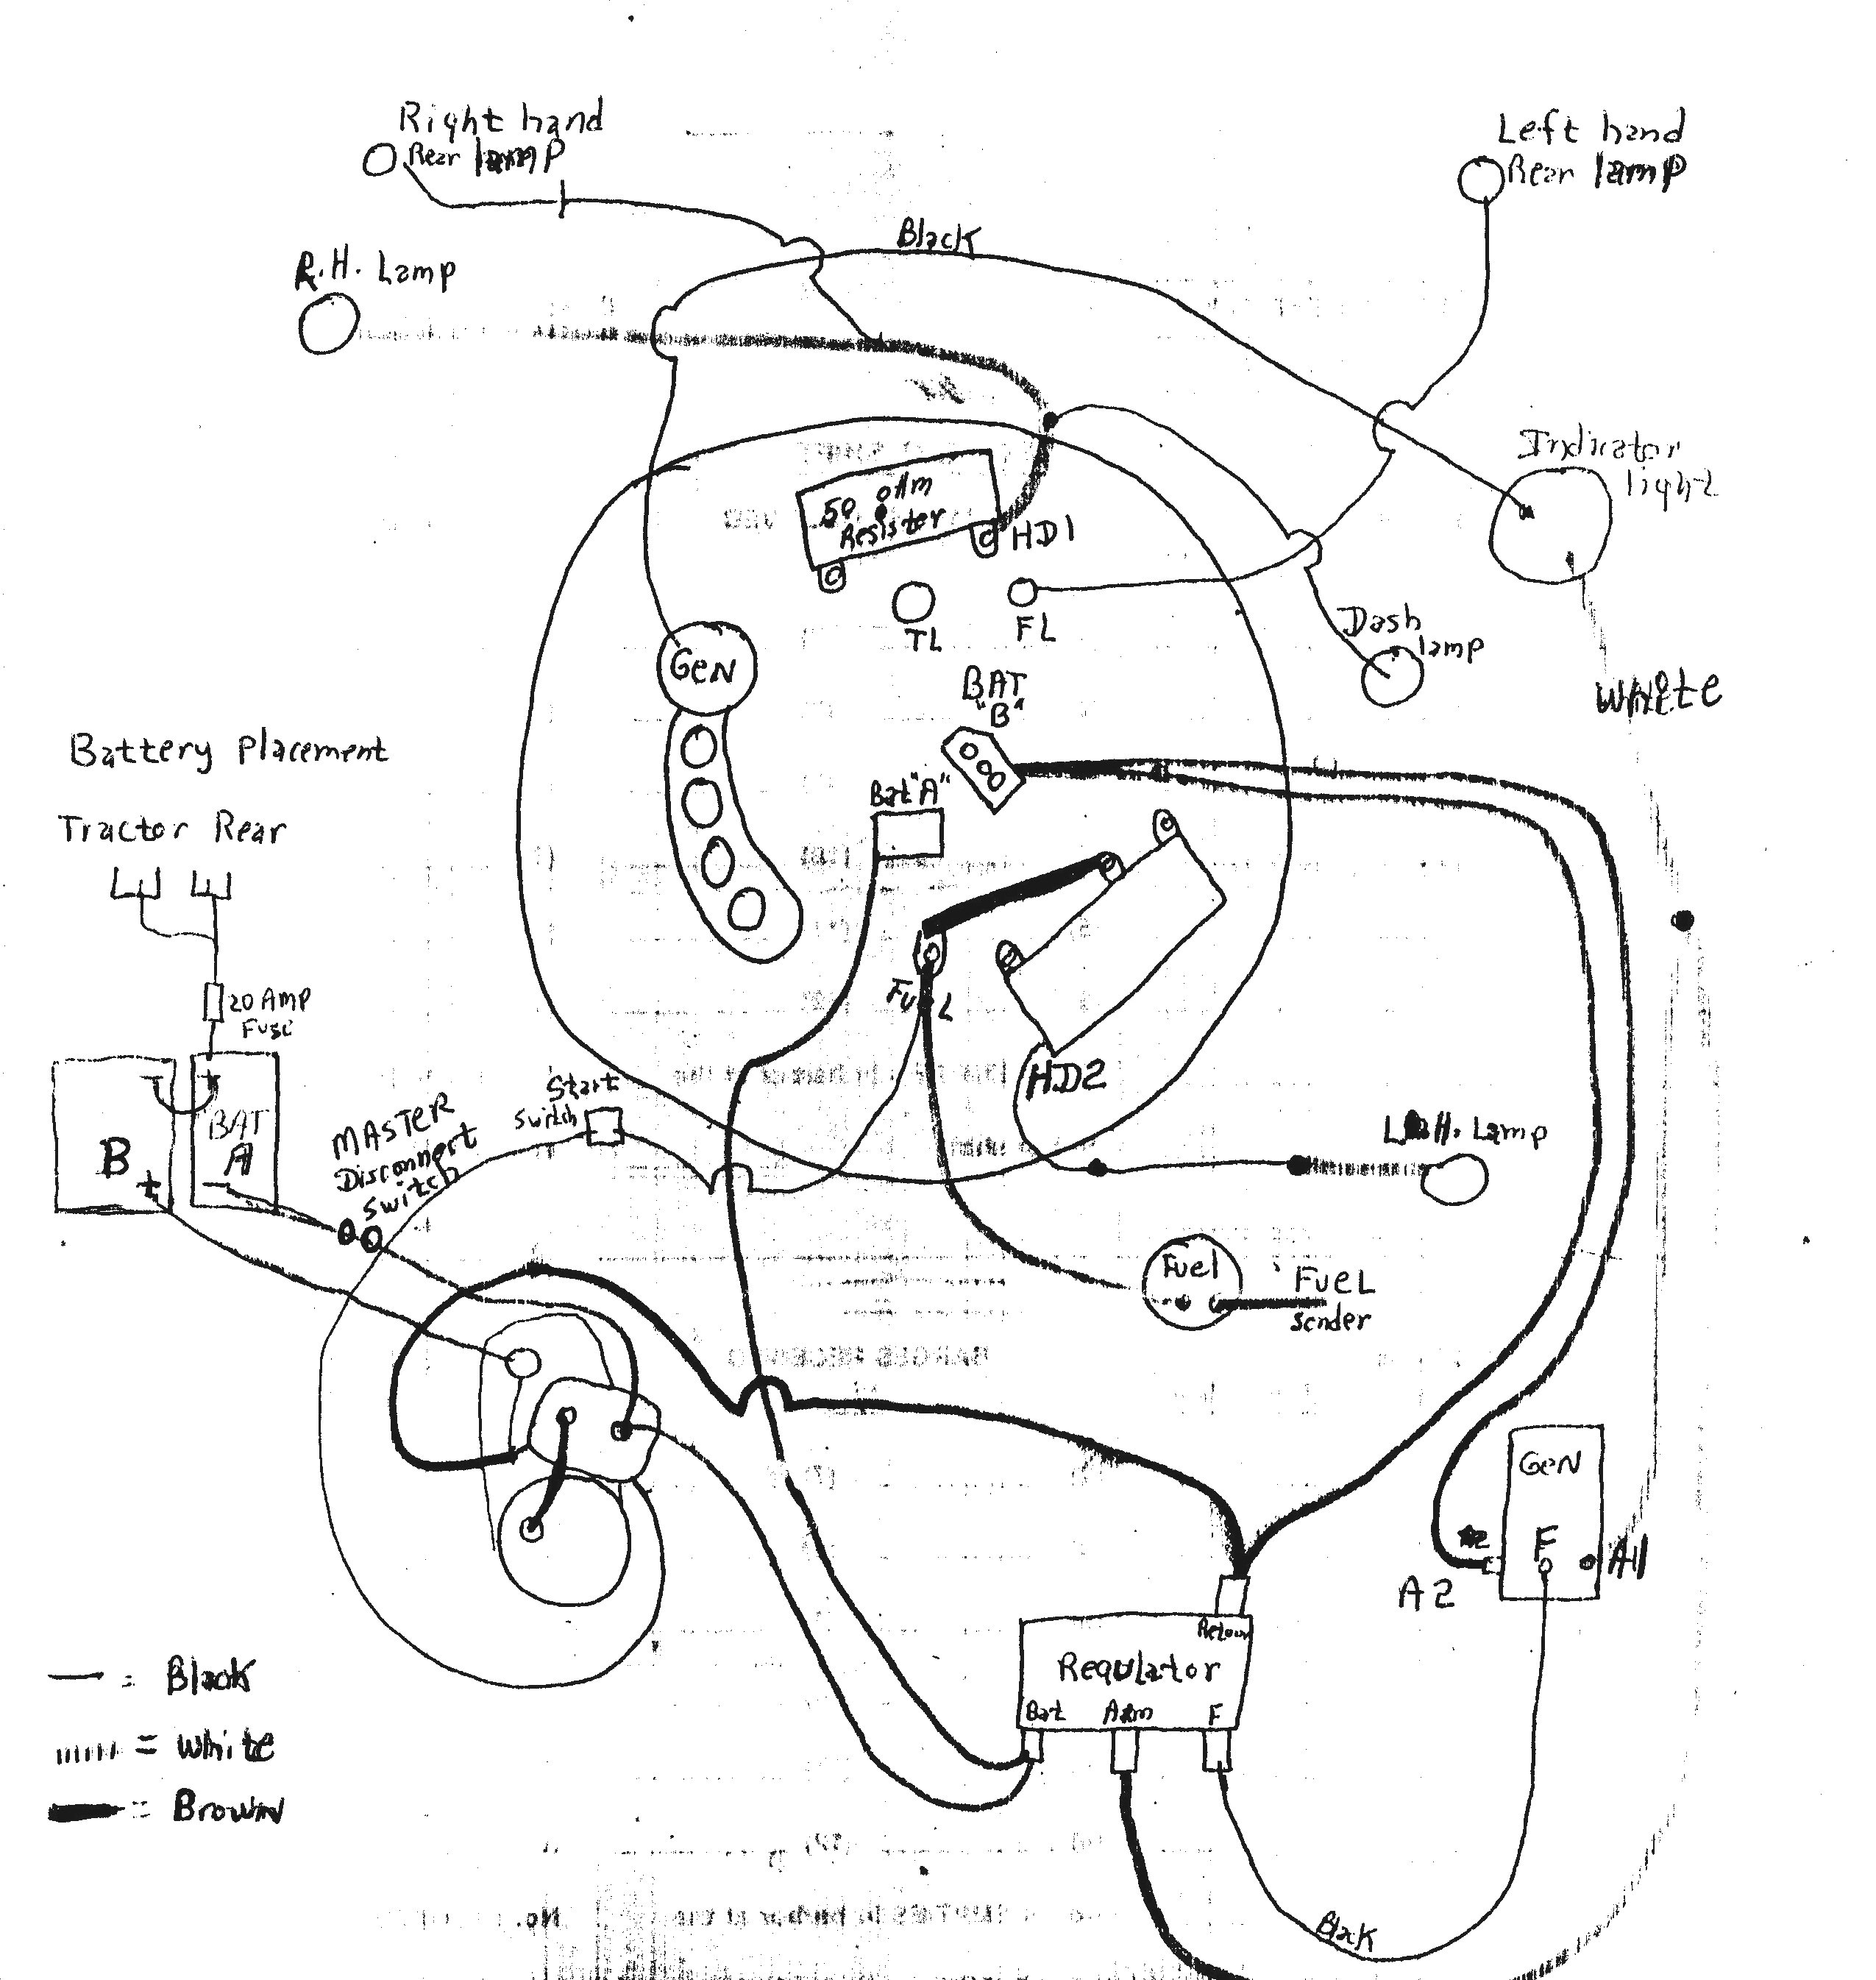 4020 wiring diagram wiring diagram libraries John Deere L120 Electrical Diagram 24 volt 4020 wiring diagram wiring diagram todaysthe john deere 24 volt electrical system explained 277